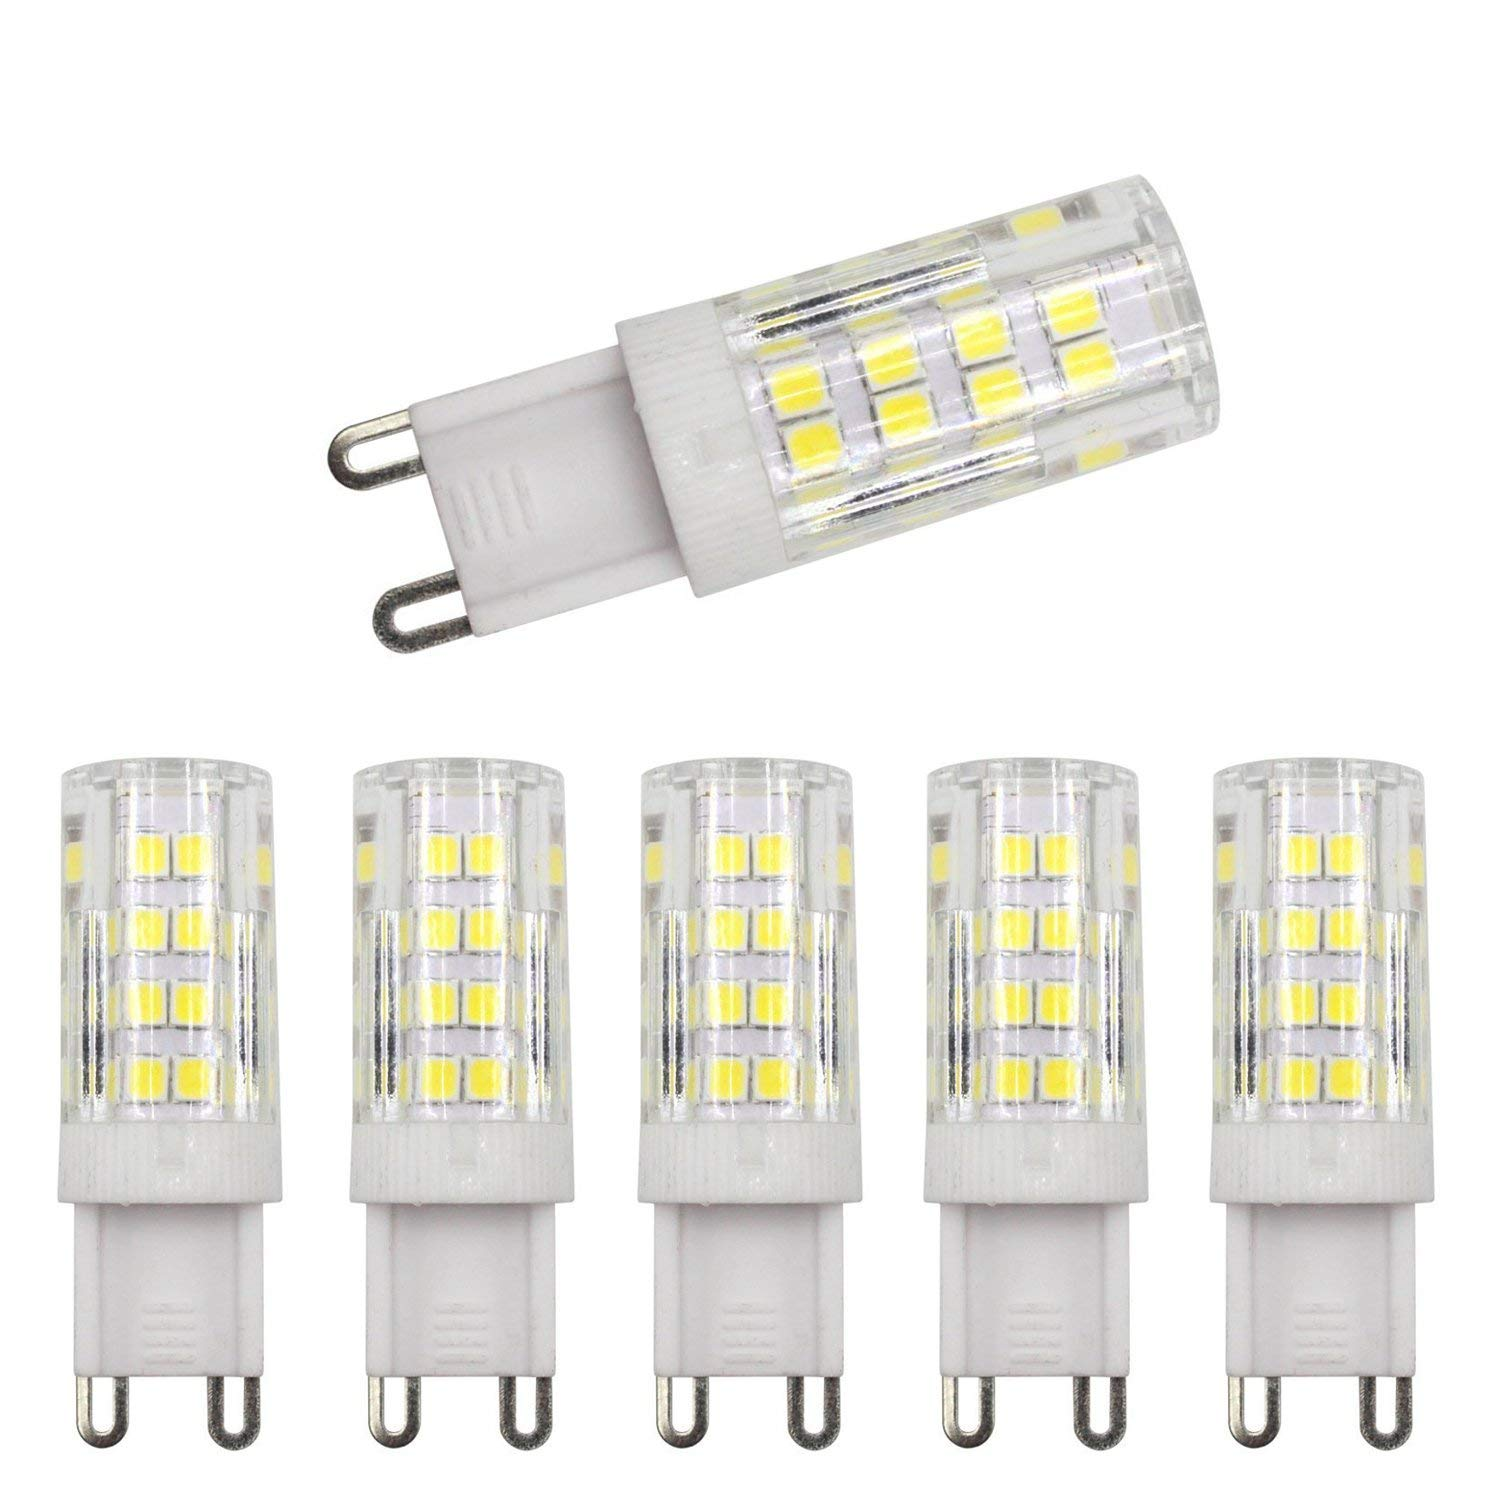 yjyuan G9 LED Dimmable Light, Bi-pin Base, Daylight White 6000k,4W (40W Halogen Equivalent) T4 JD Type LED G9 Bulb 400LM, AC100V-130V (5 Pack)